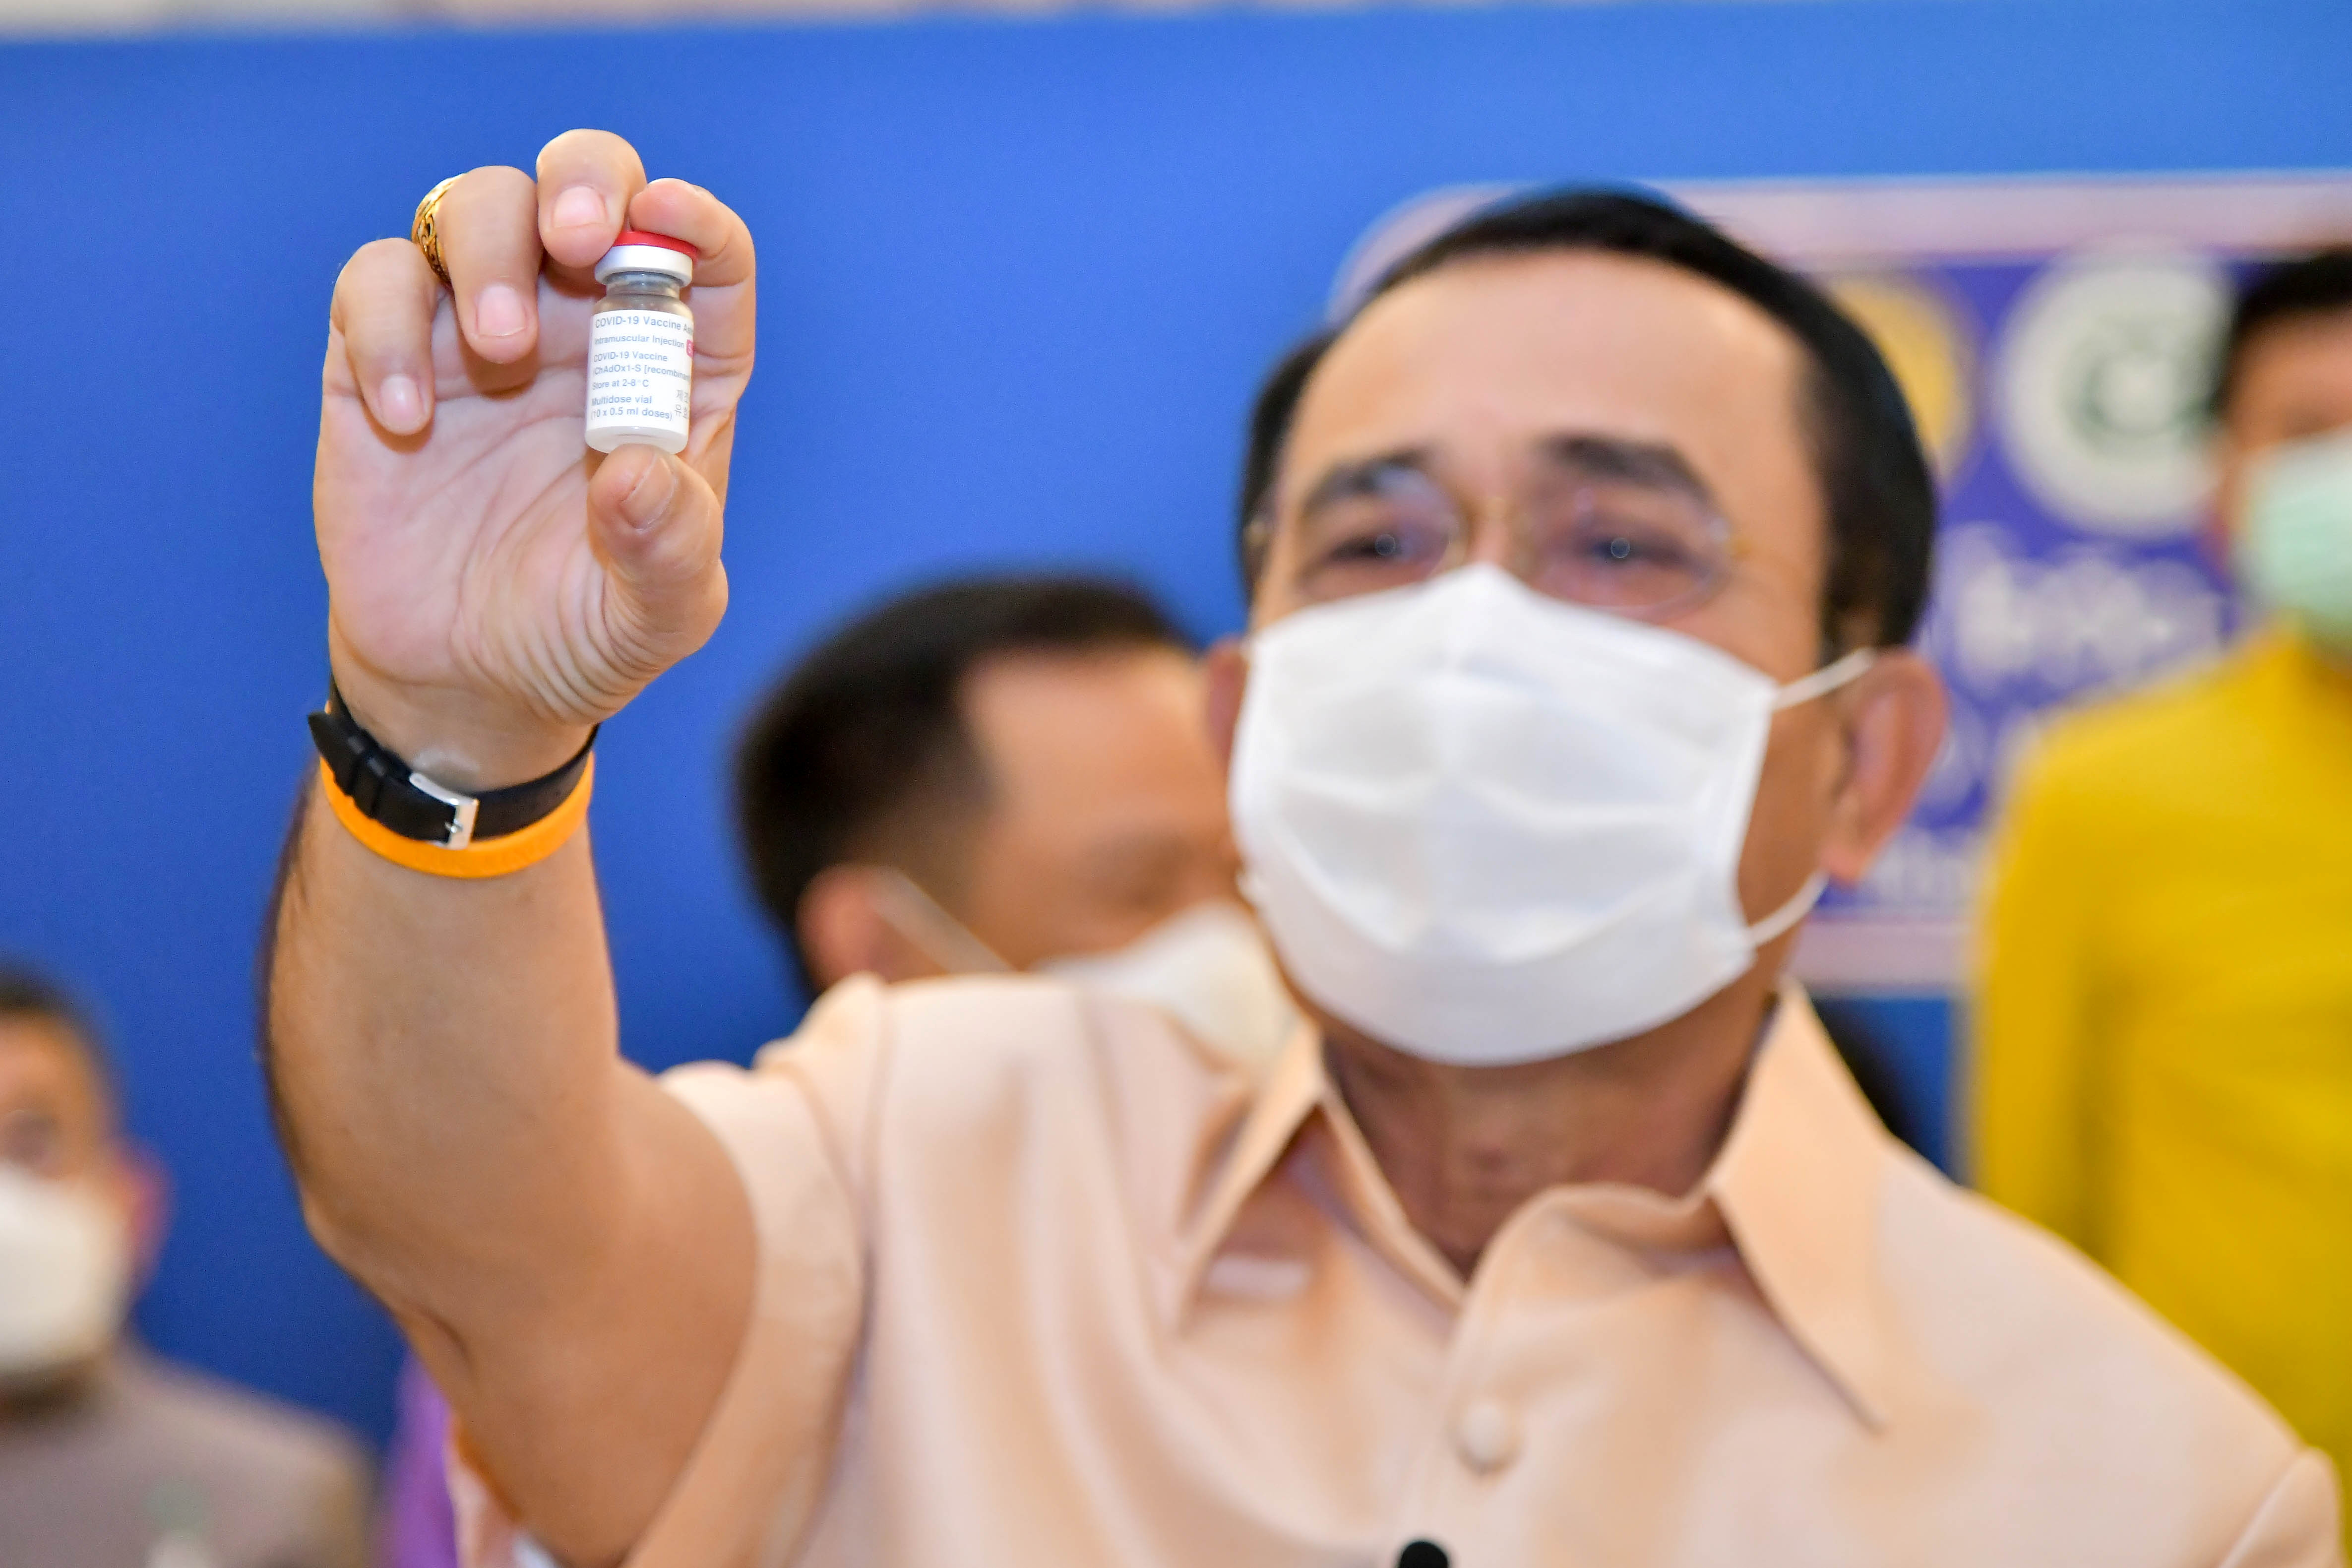 Thailand's Prime Minister Prayuth Chan-ocha holds up a vial of the AstraZeneca coronavirus disease (COVID-19) vaccine before receiving an injection at the Government House in Bangkok, Thailand, March 16, 2021. Thailand Government House/Handout via REUTERS